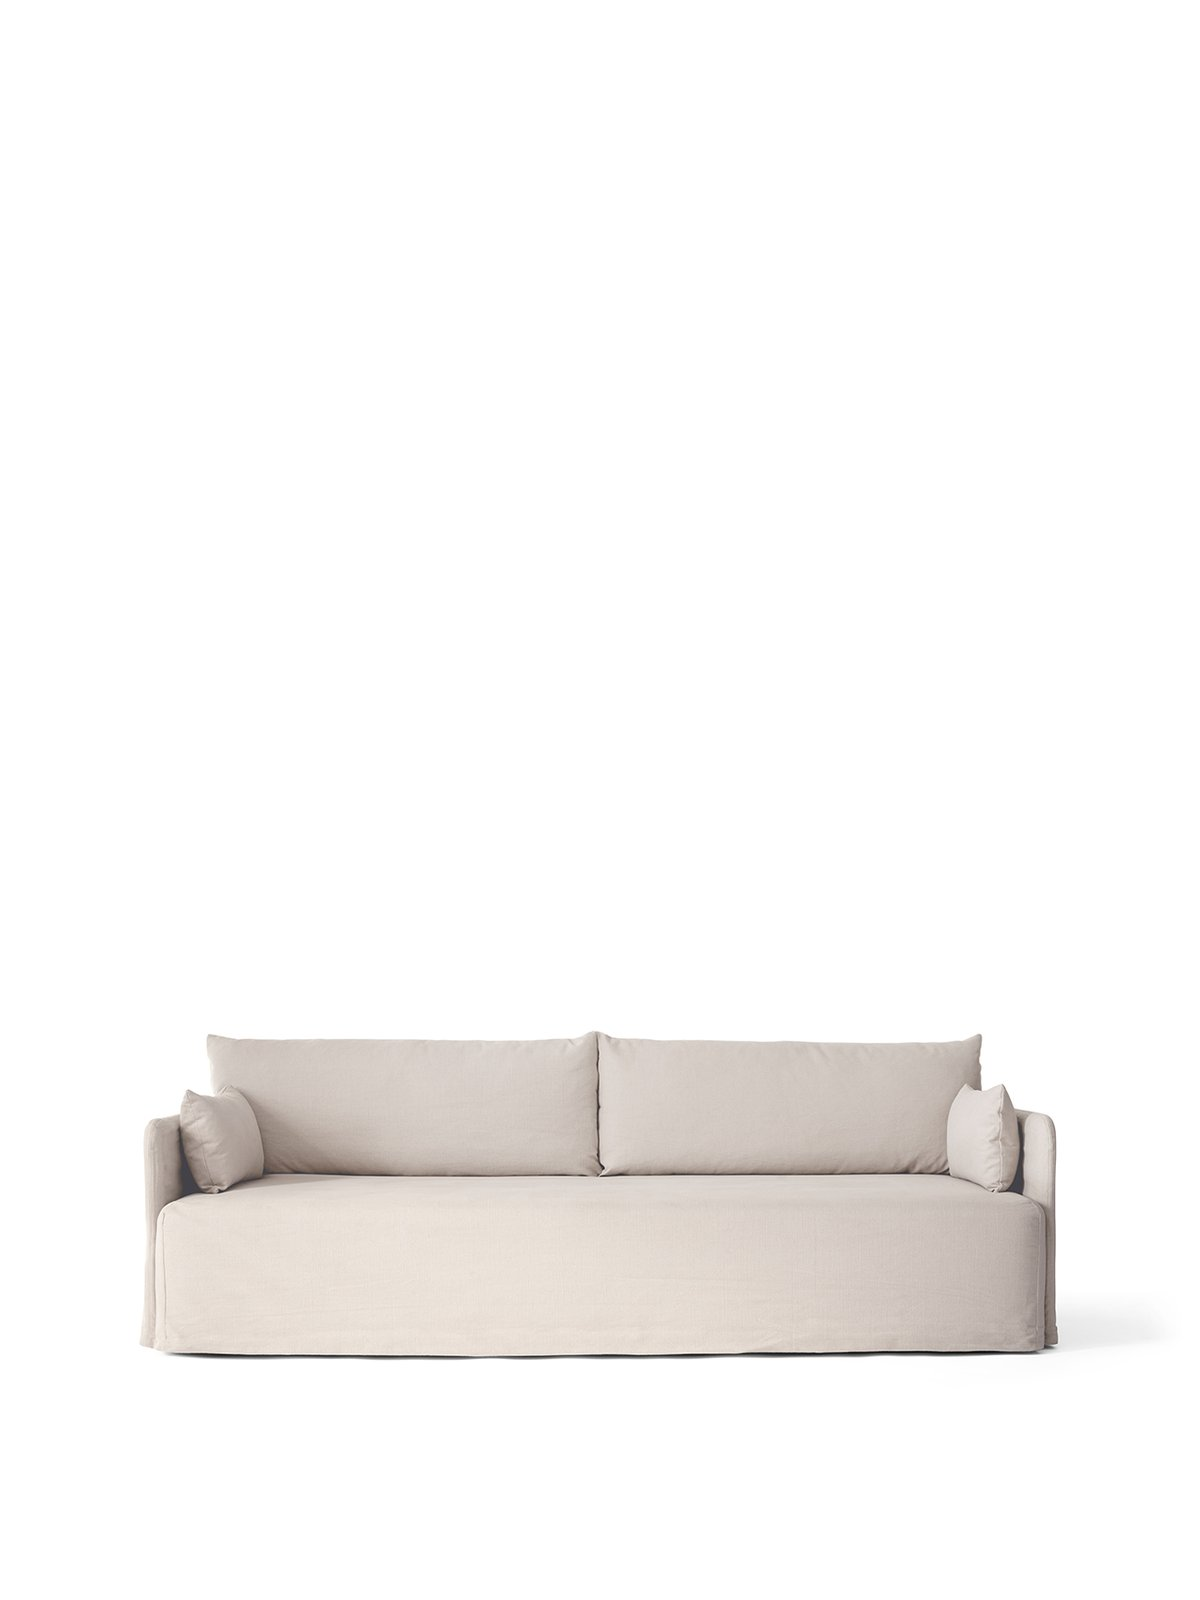 Offset 3 seater sofa with Loose Cover